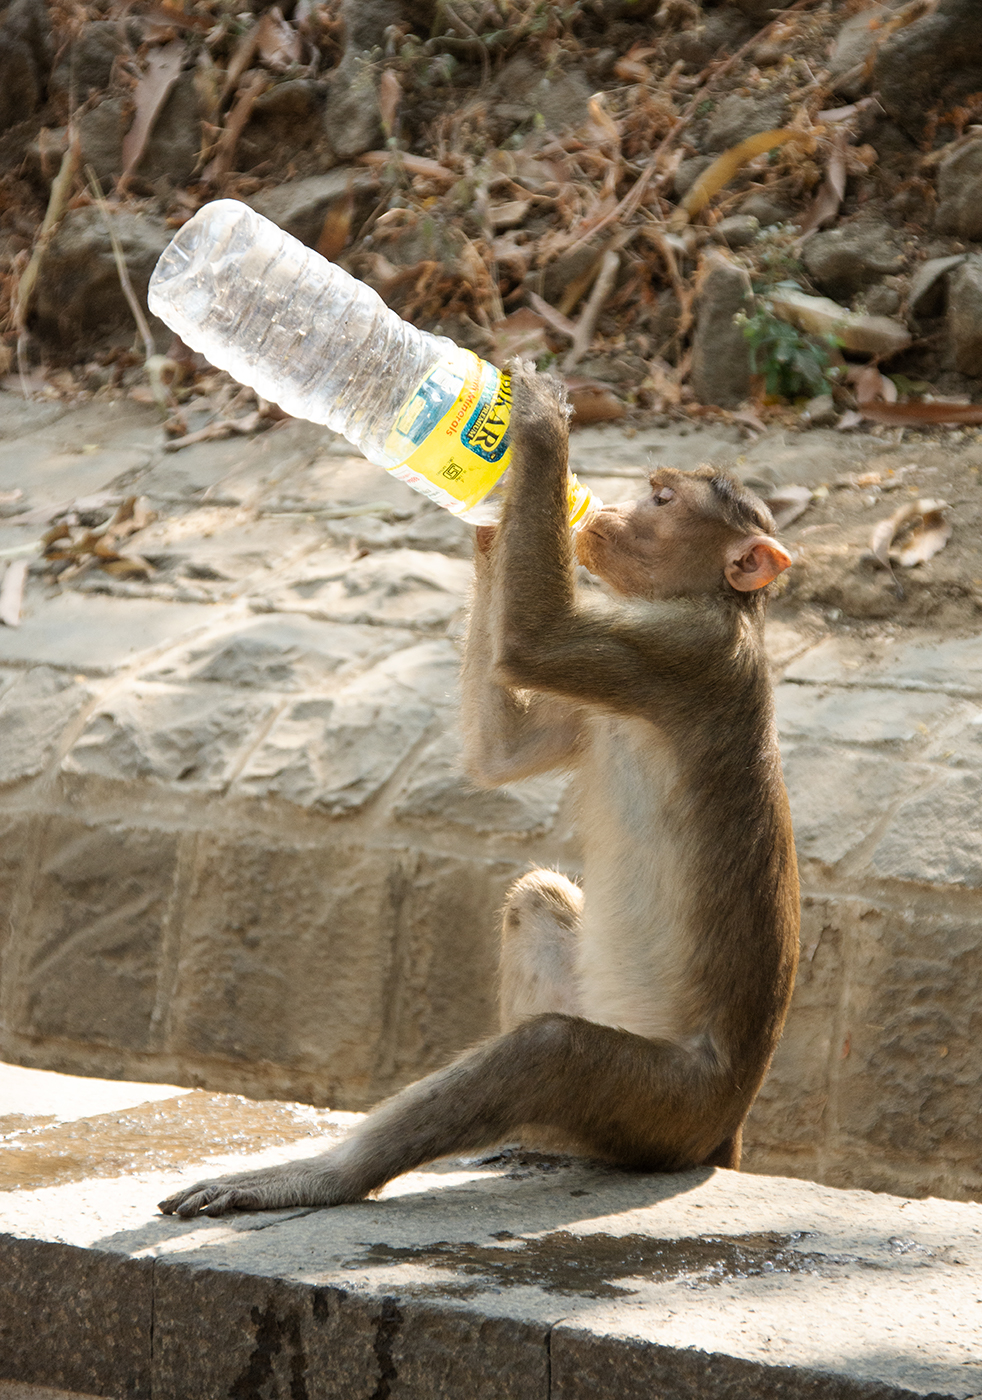 Monkey_WaterBottle_web2019.jpg